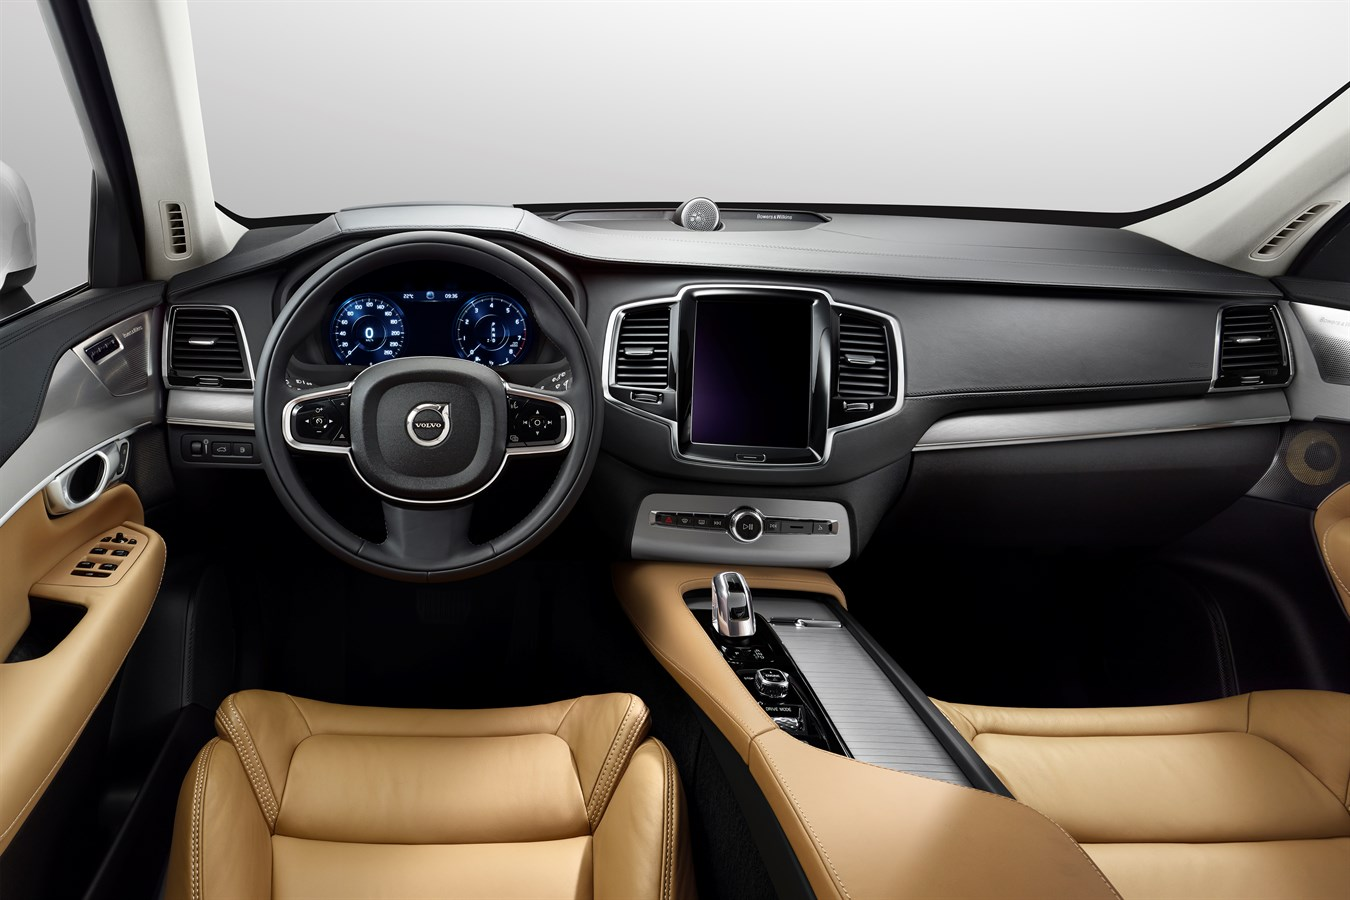 Volvo Xc90 Interior >> The All New Volvo Xc90 Interior Volvo Cars Global Media